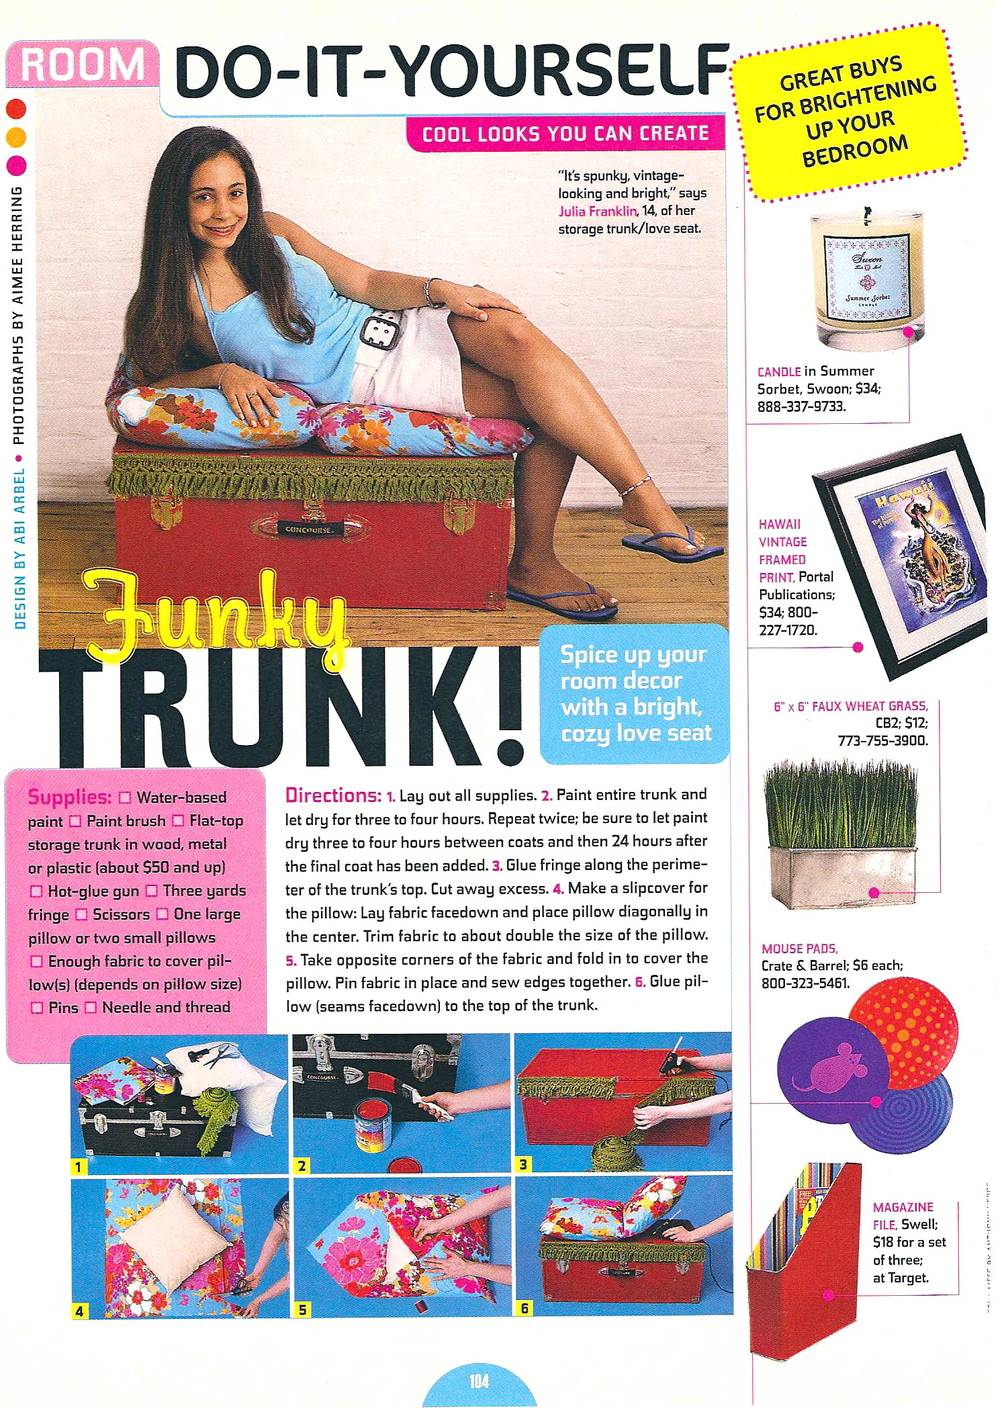 29teen people diy room trunk june 03.jpg